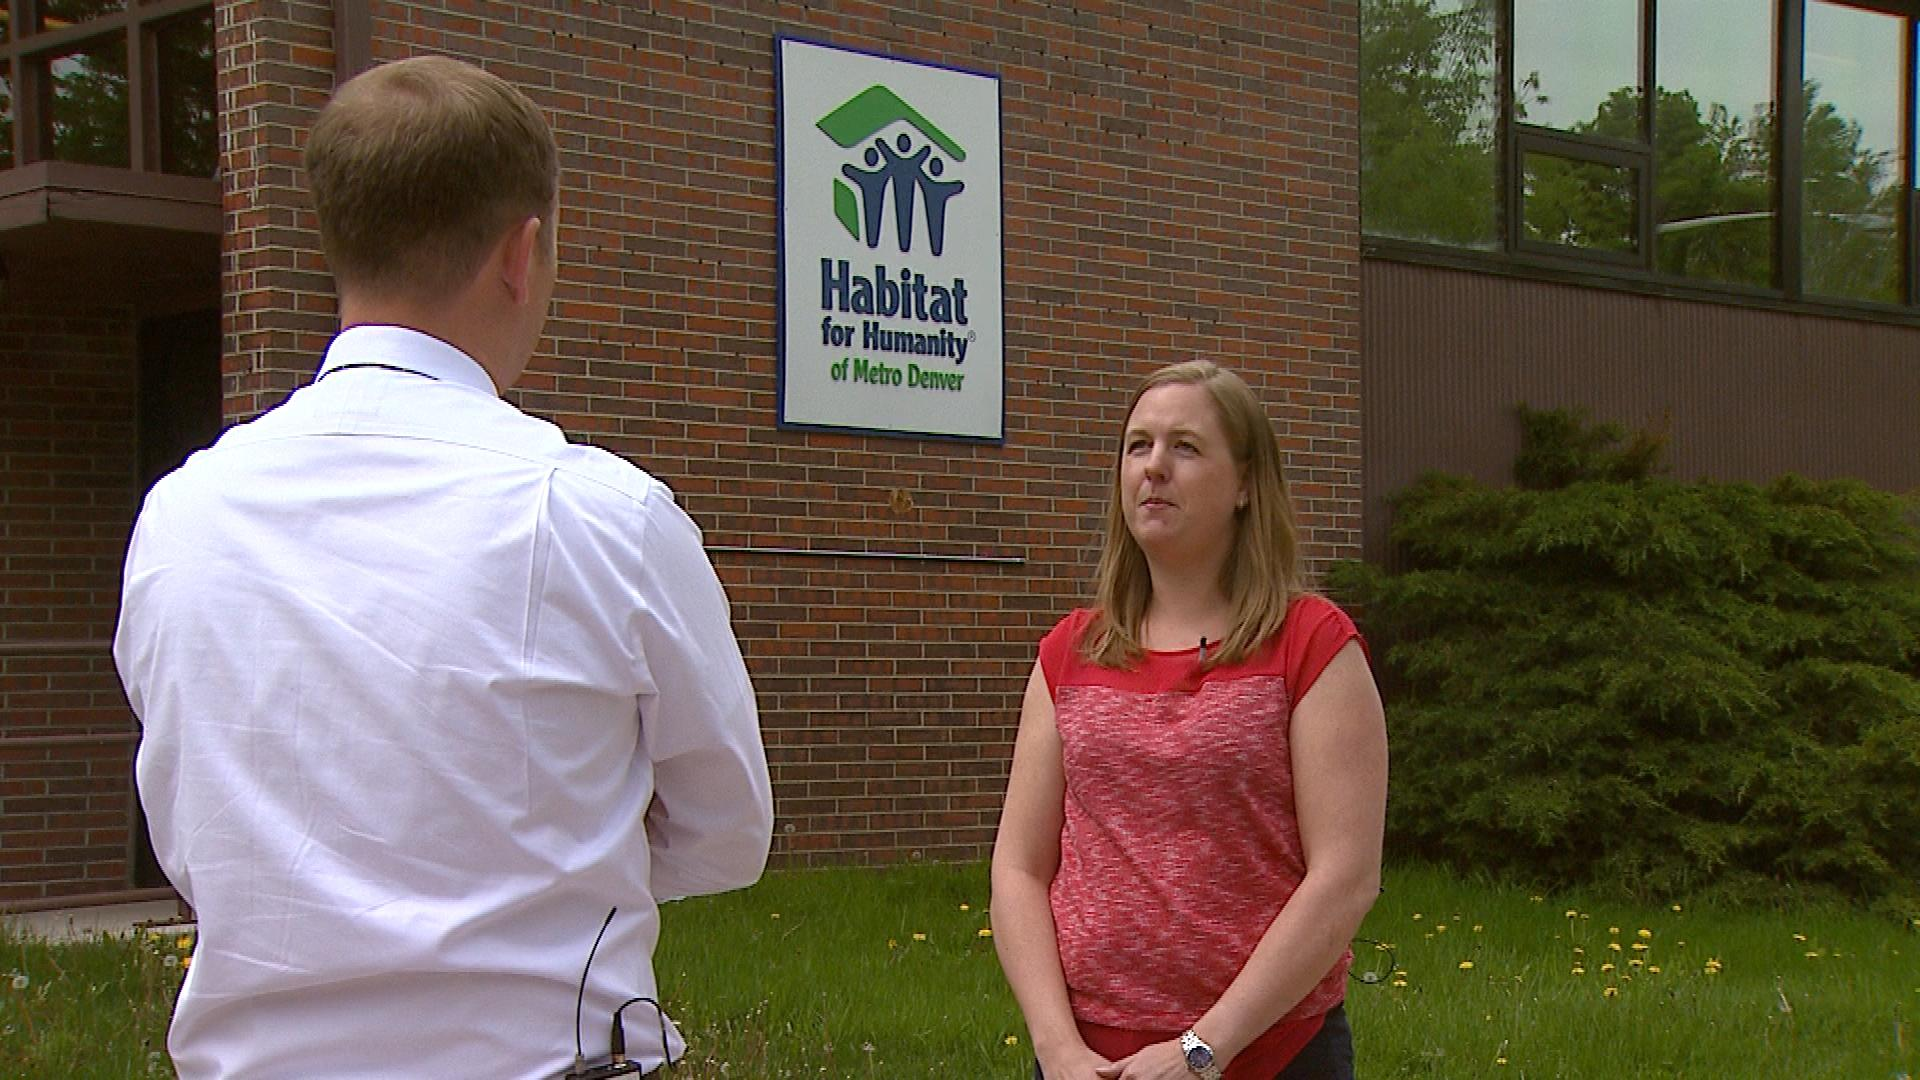 CBS4's Jeff Todd talks with Robyn Burns with Habitat for Humanity of Metro Denver (credit: CBS)